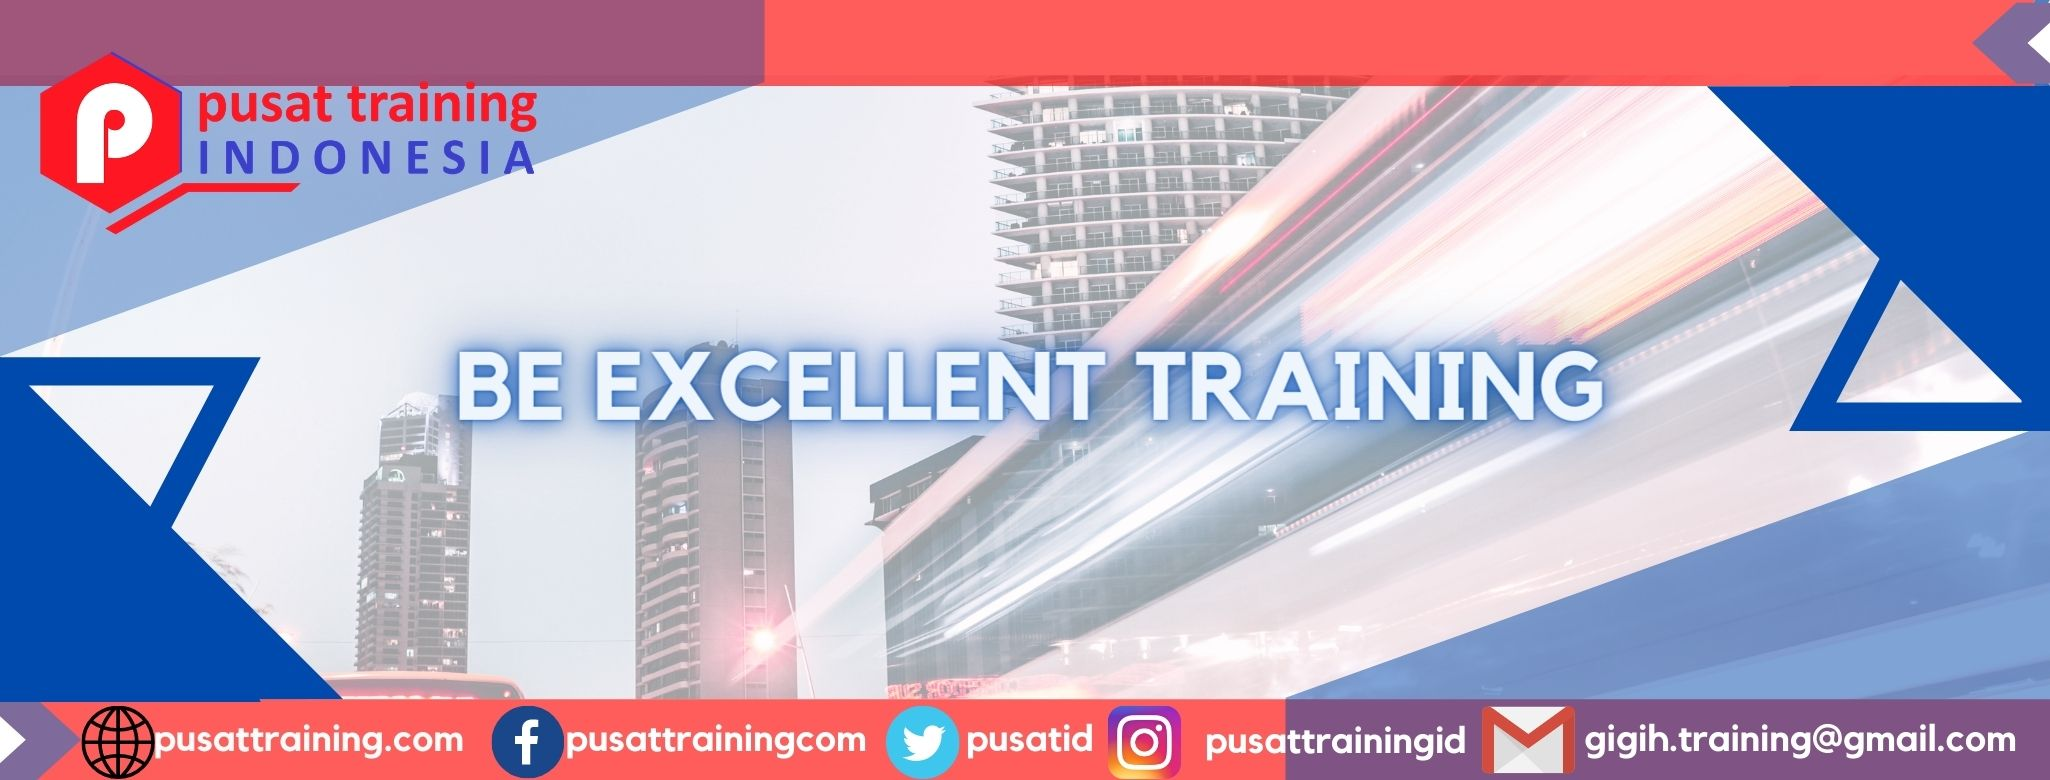 BE EXCELLENT TRAINING